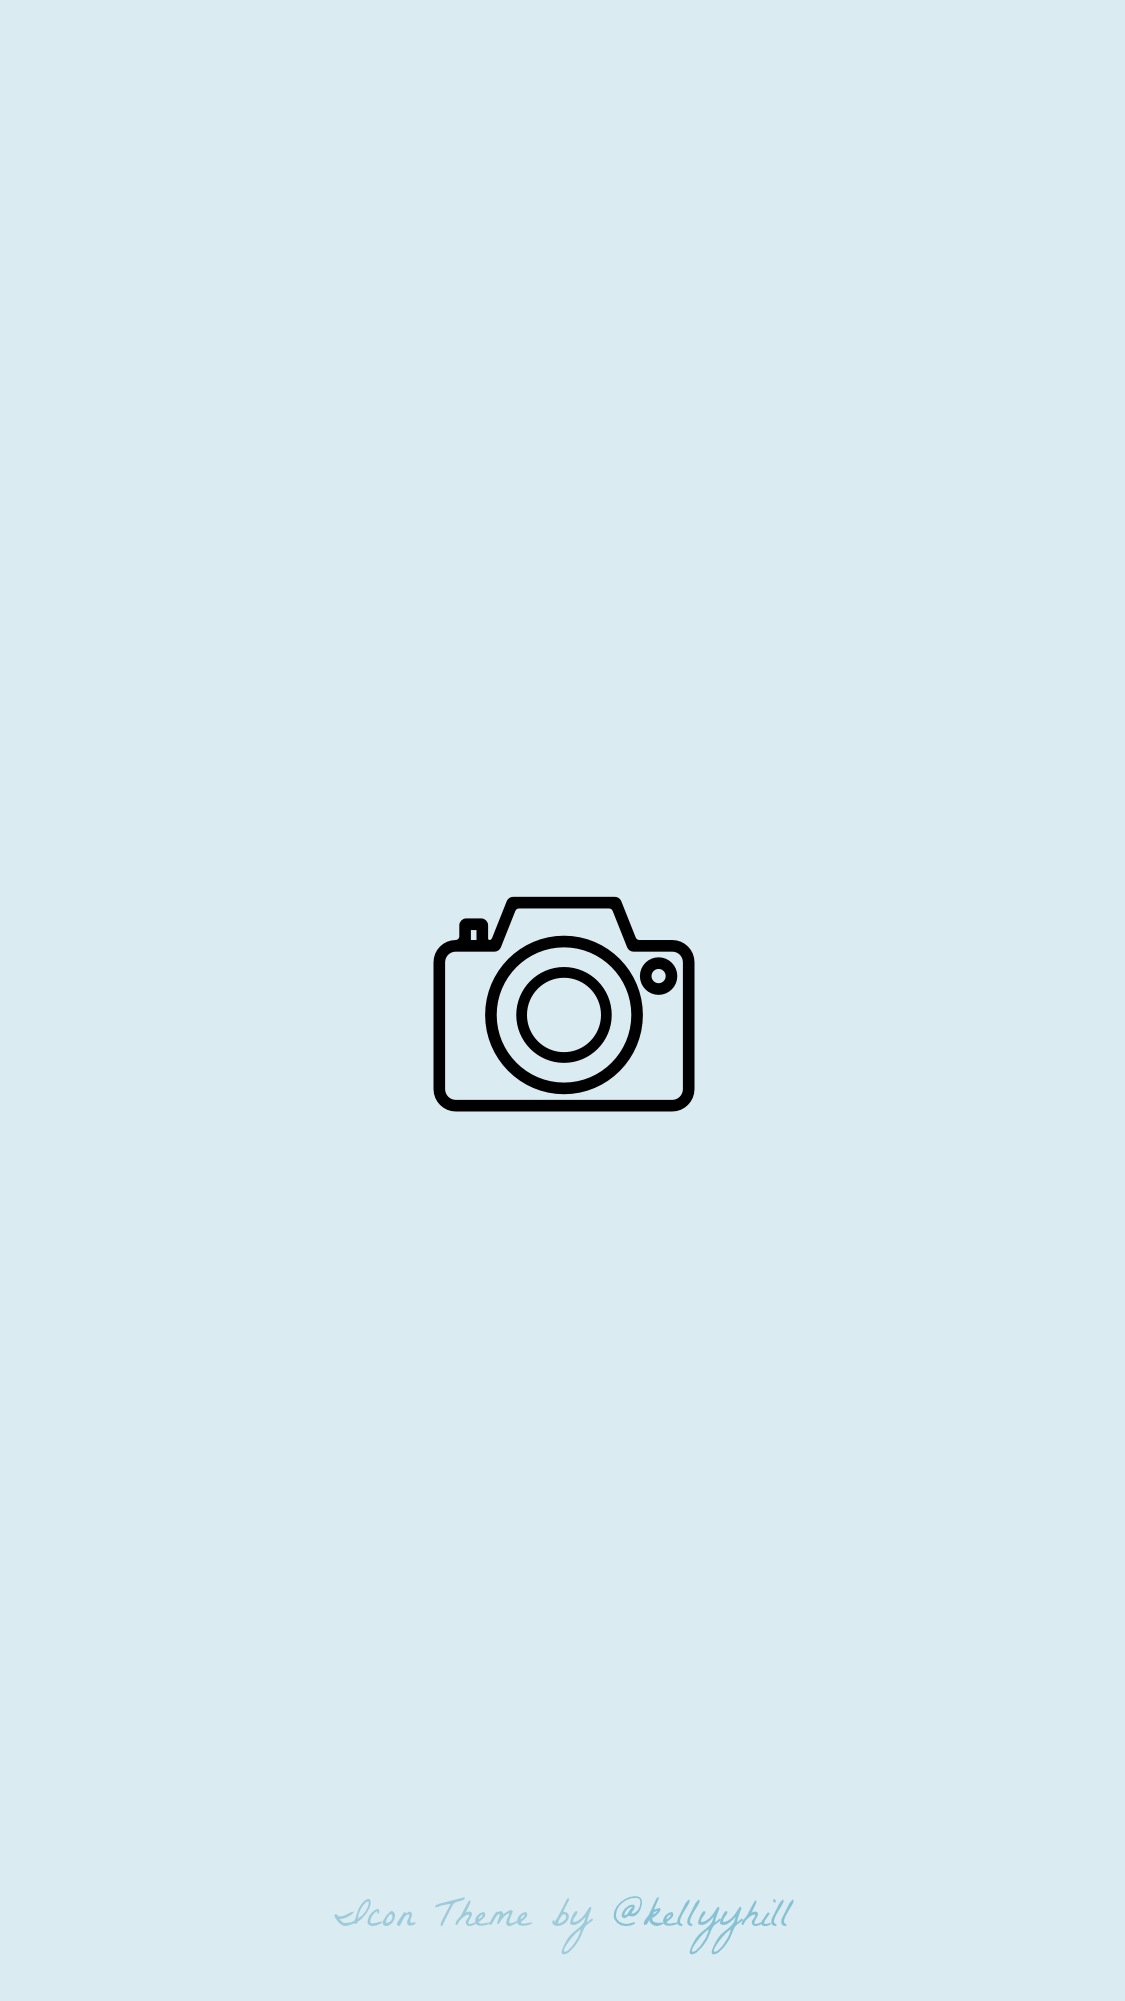 Kelly Hill Free Instagram Highlights Template Warm City Blue 02 Icons In 2020 Instagram Logo Instagram Icons Cute App